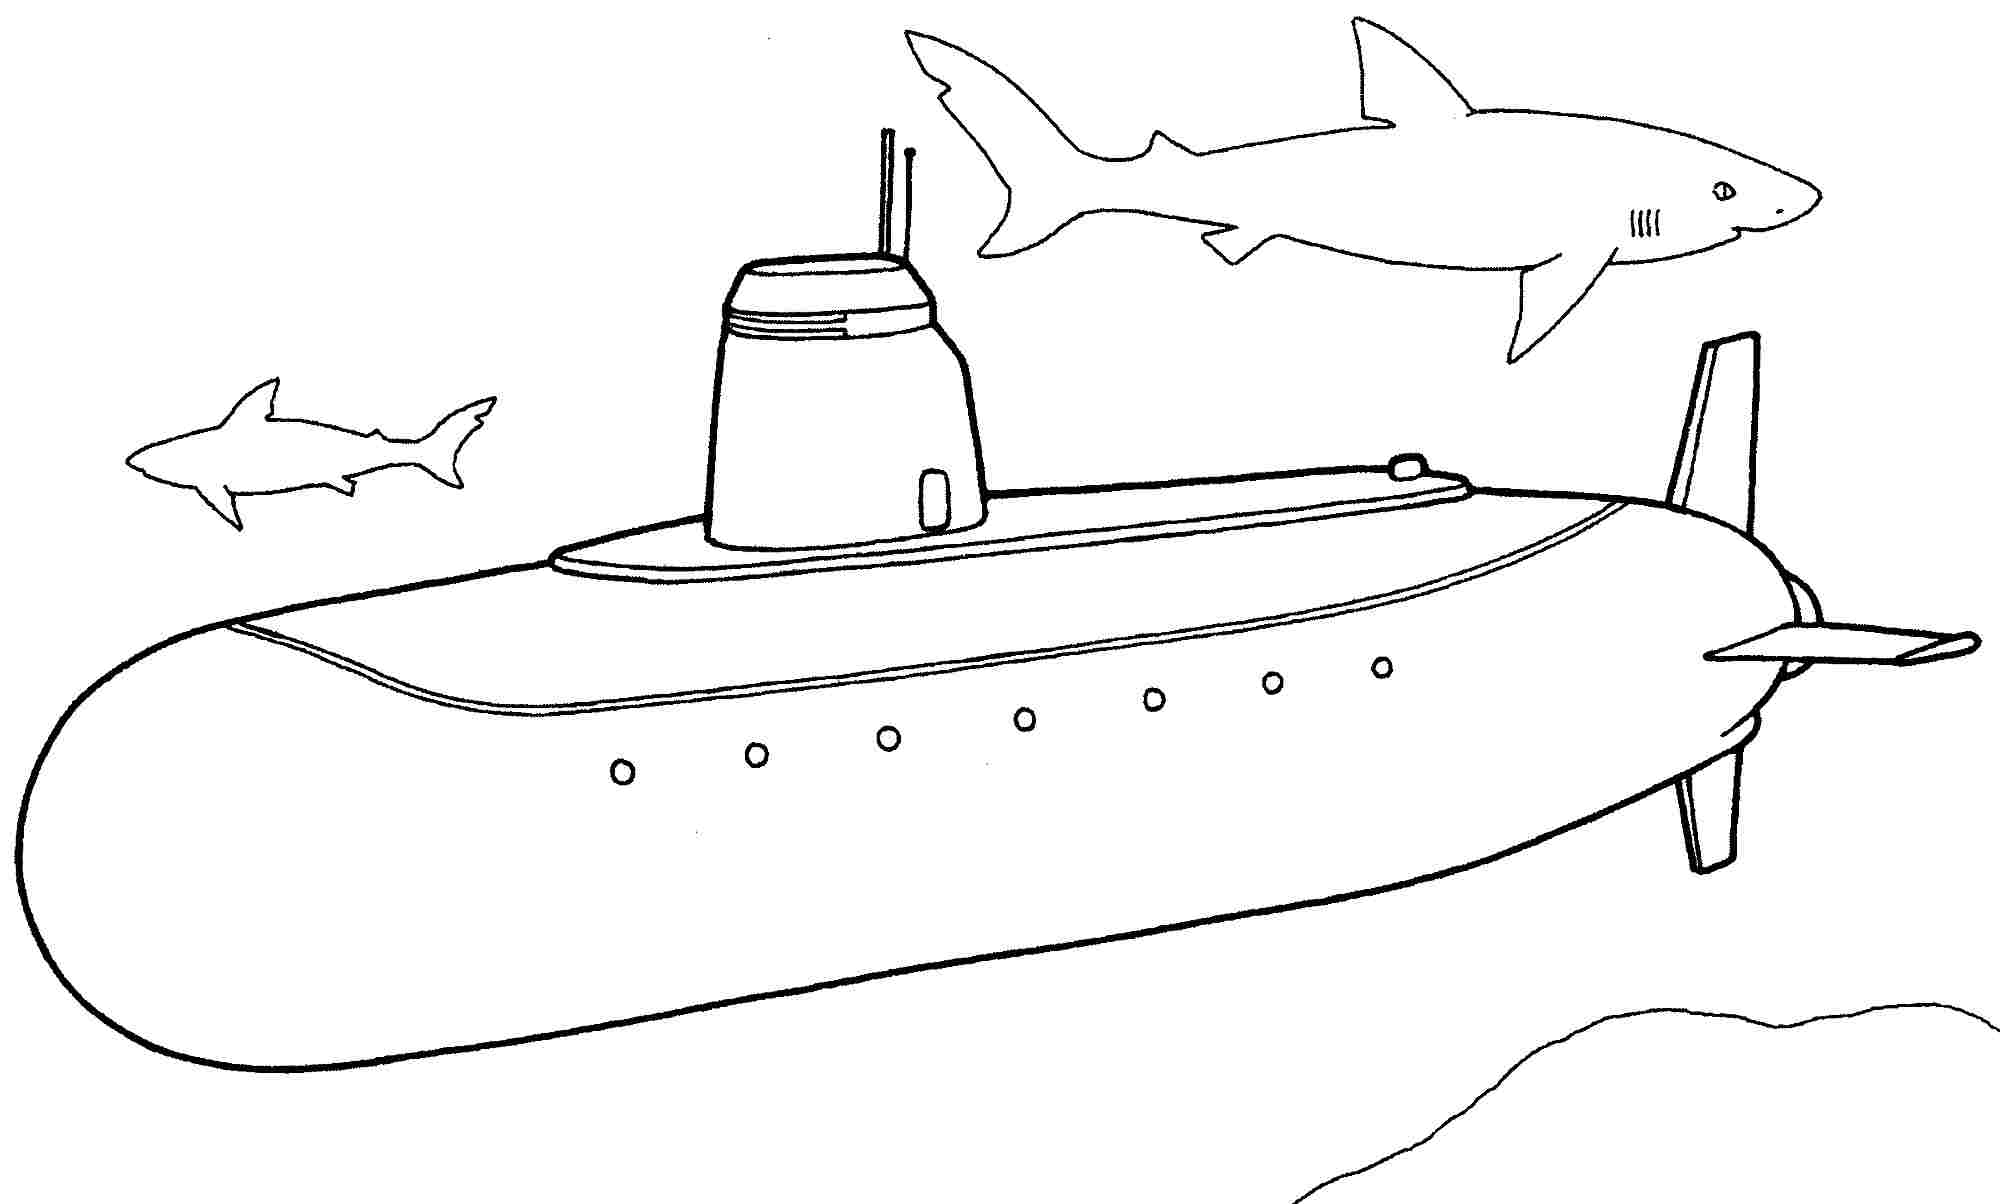 submarine coloring pages to download and print for free - Submarine Coloring Pages Print